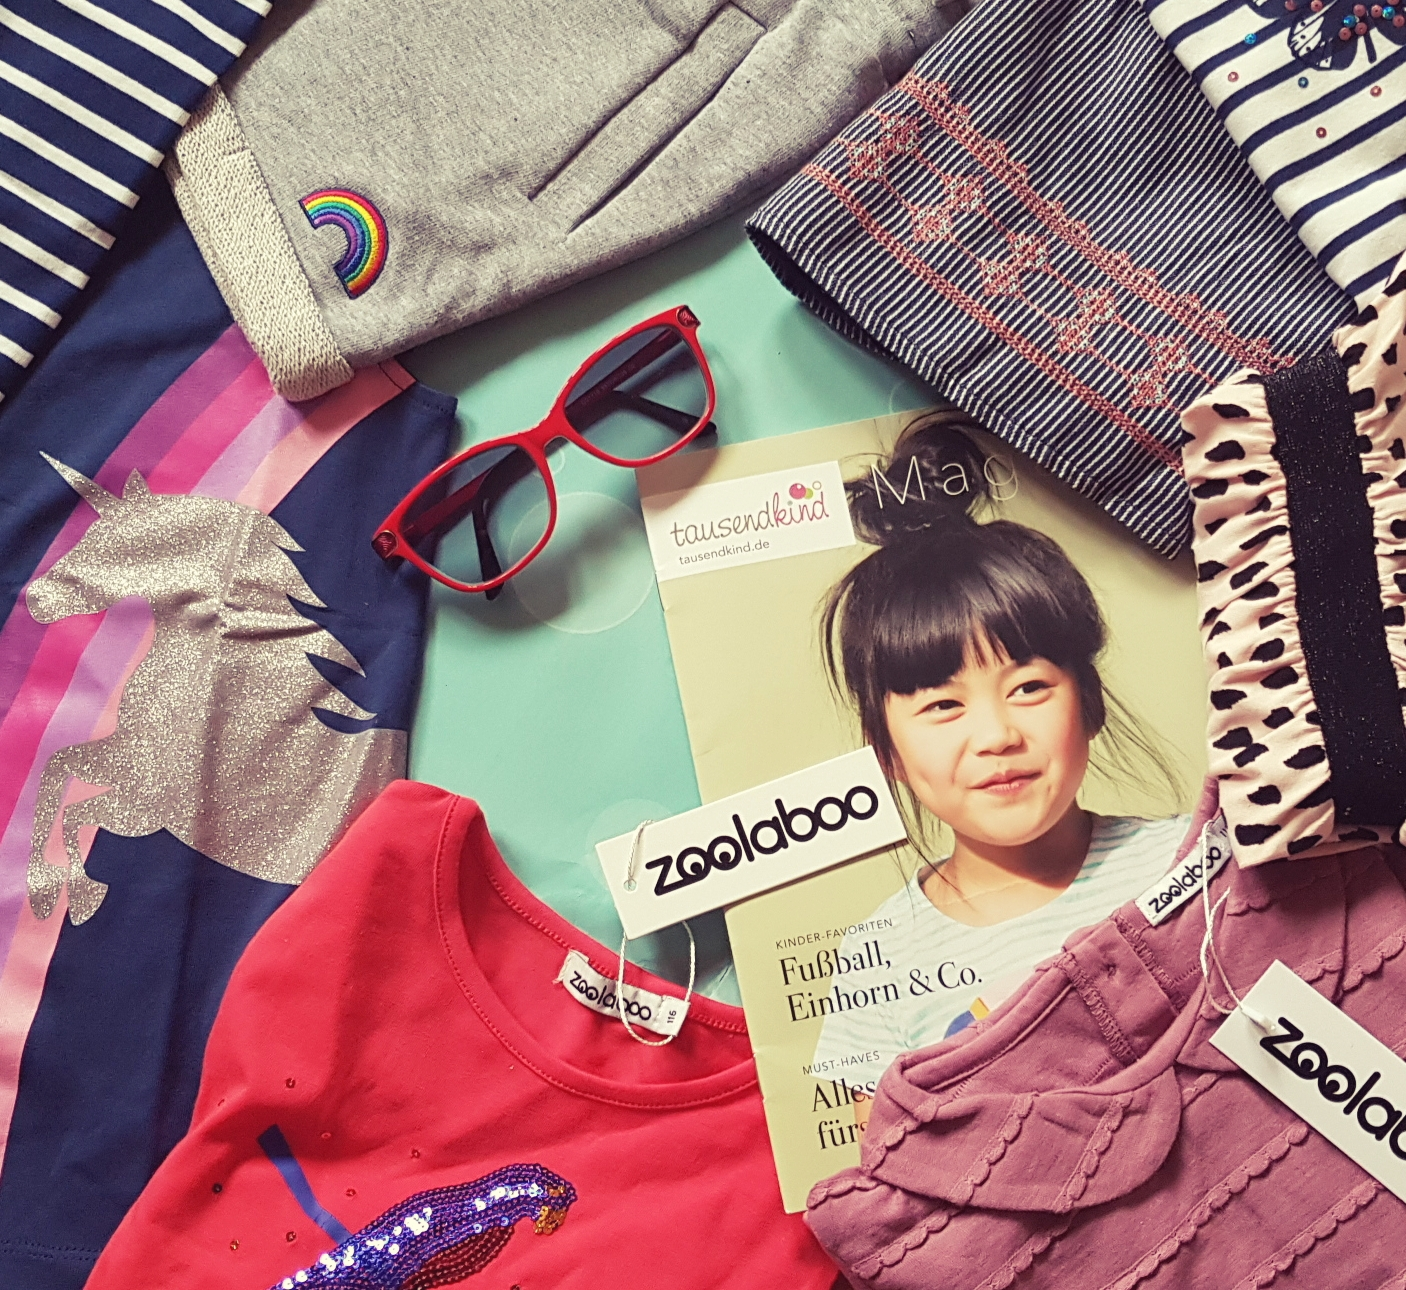 Zoolaboo Kindermode Look Book Sweet Basics